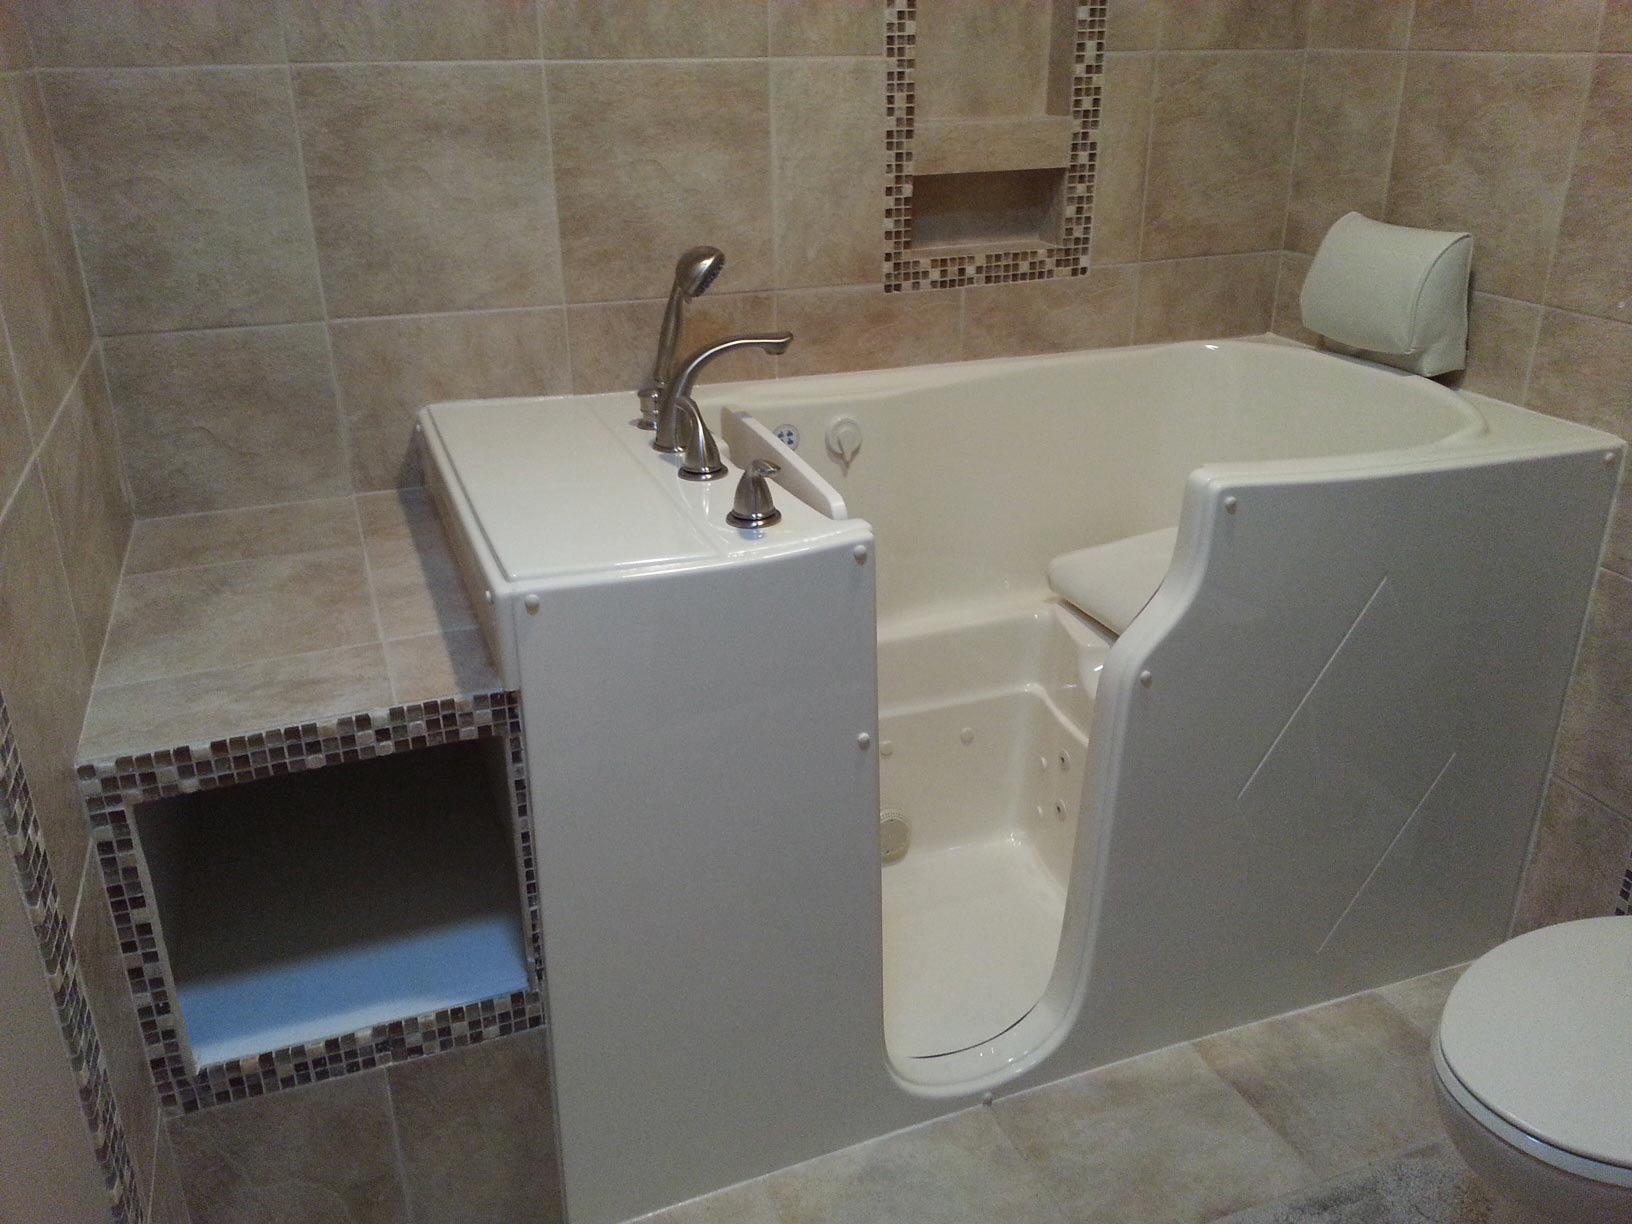 TheraTub Walk In Tubs Best USA Design Price Step And Warranty